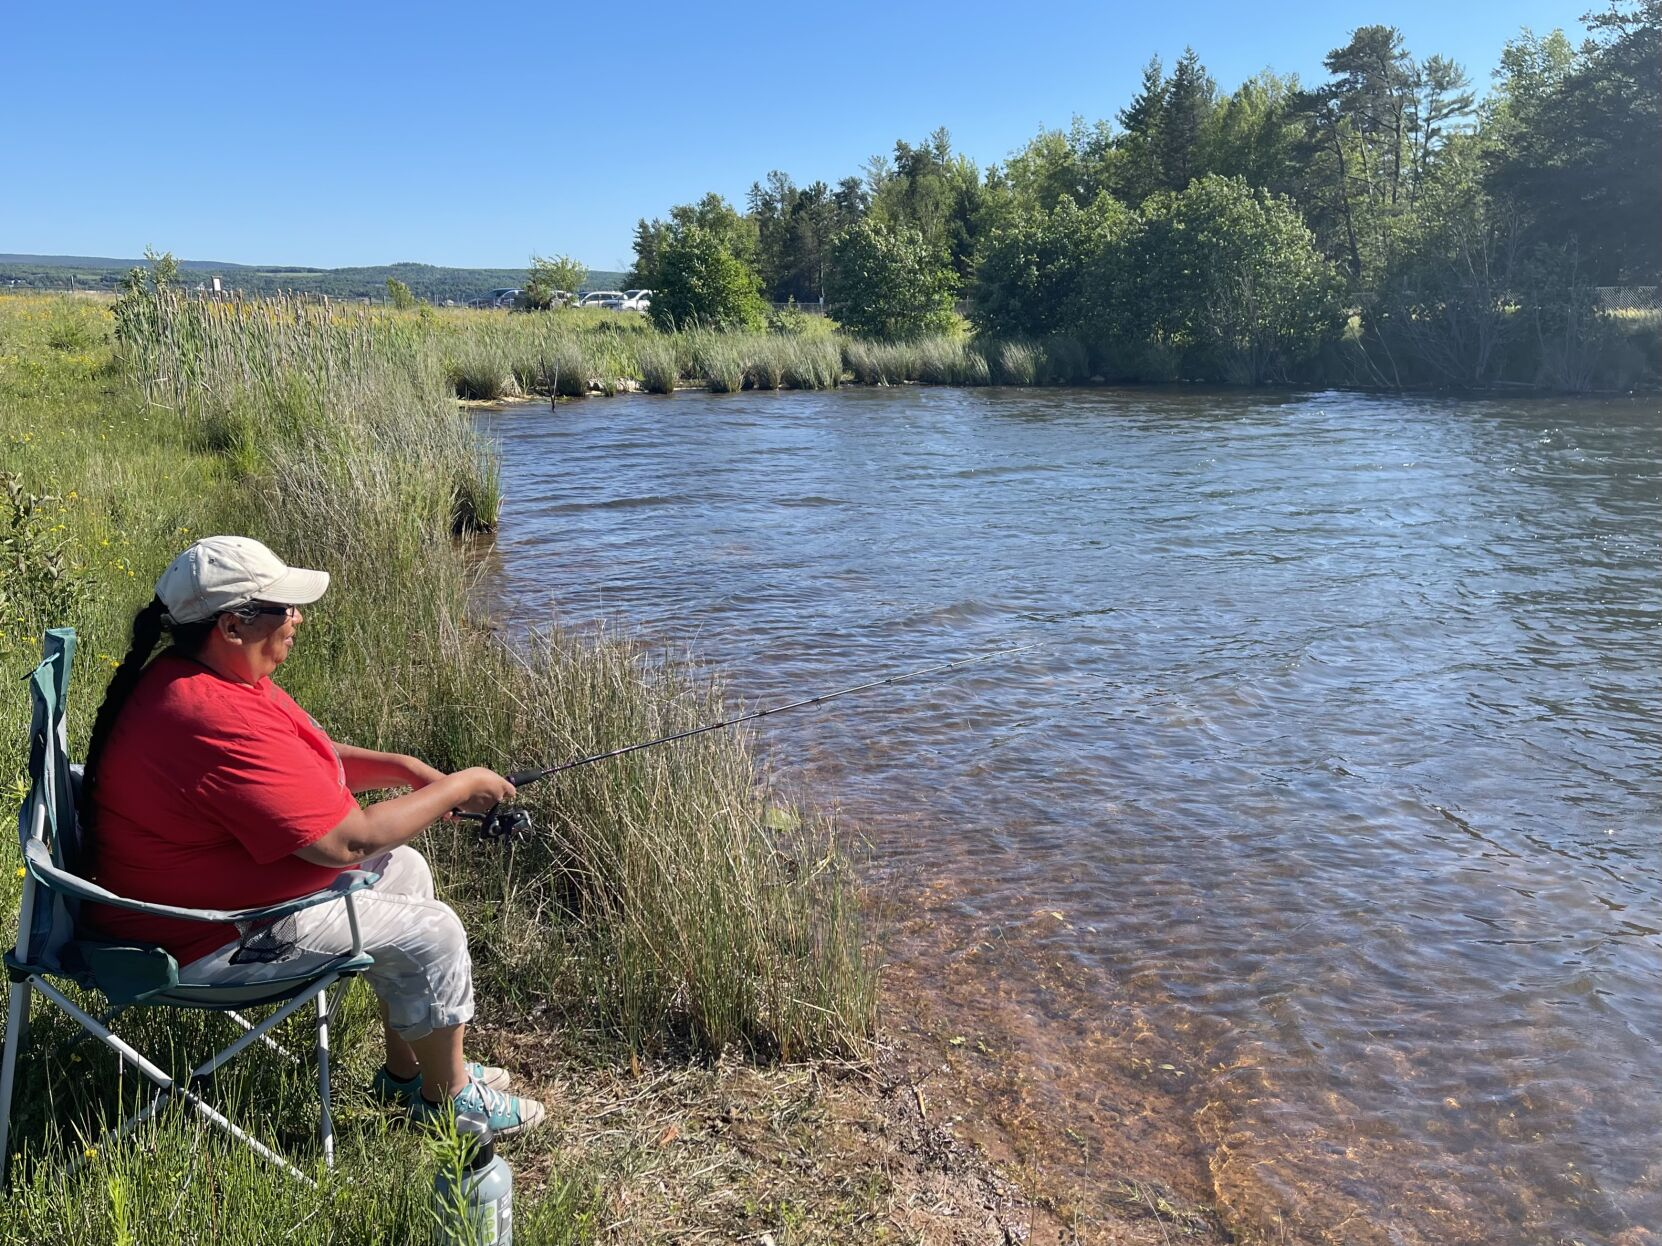 Fish advisories impact tribal traditions; Lake Superior smelt the latest species found contaminated